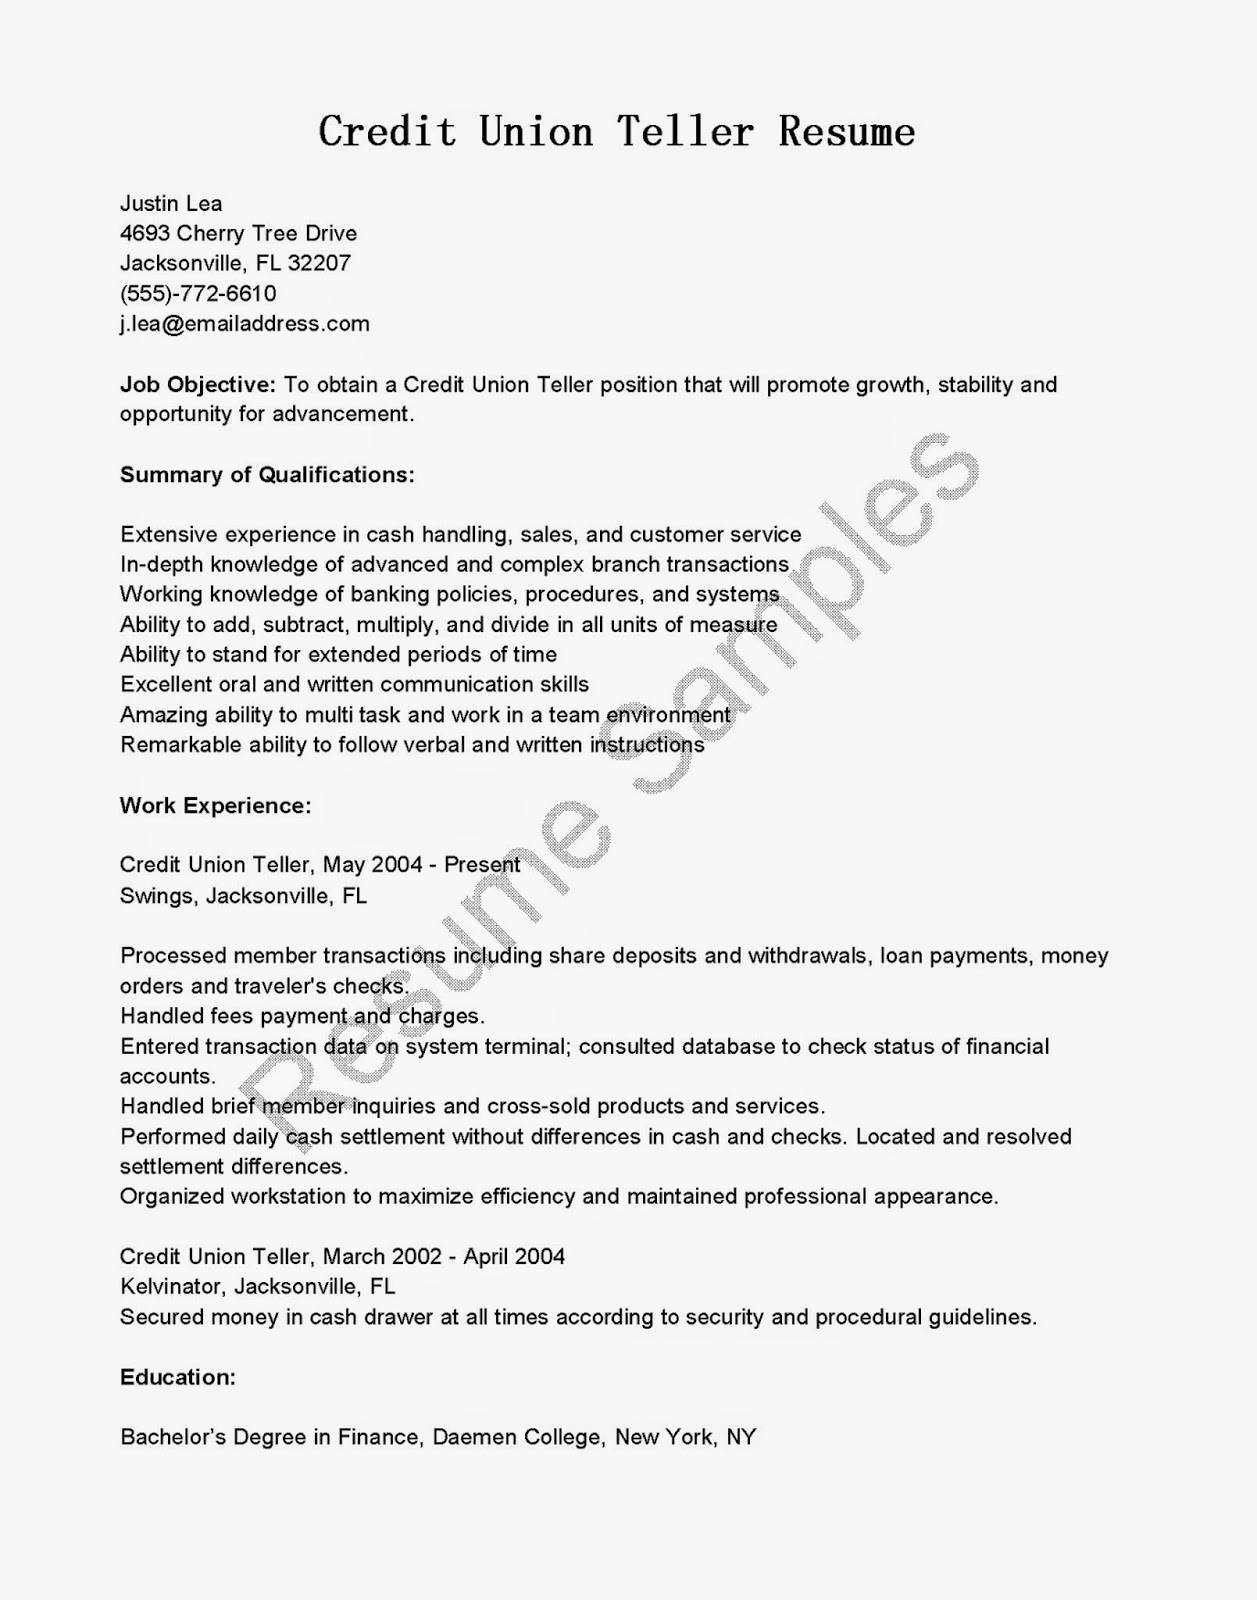 Credit Union Teller Cover Letter Essay Giving English Language